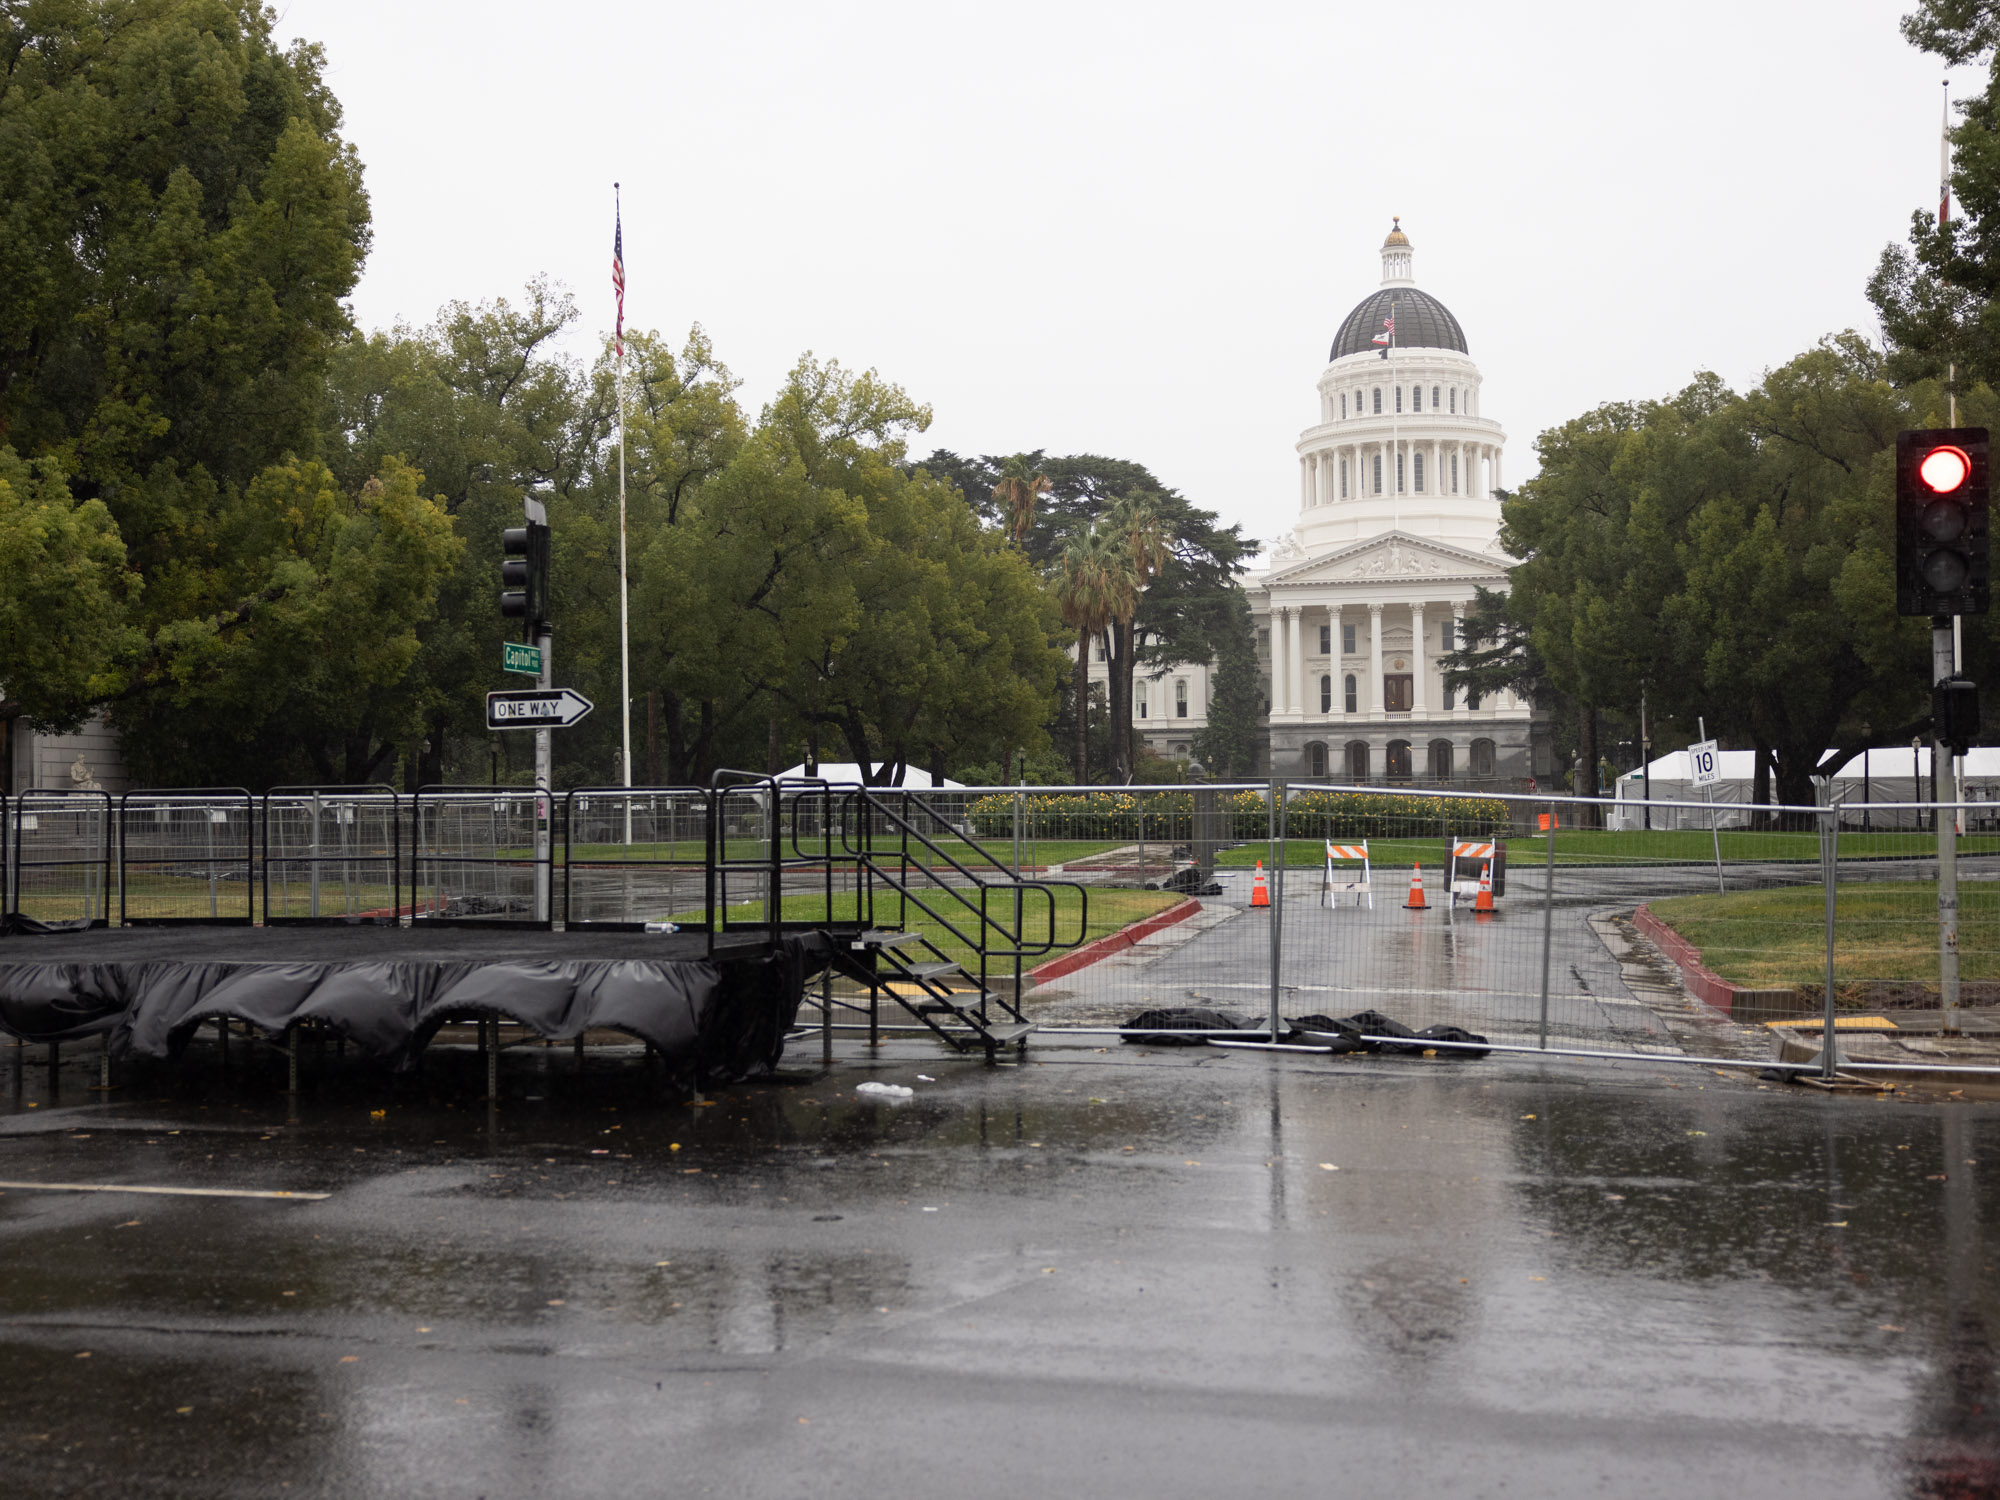 Sacramento went from record drought to record rain. Climate change may make that more common.